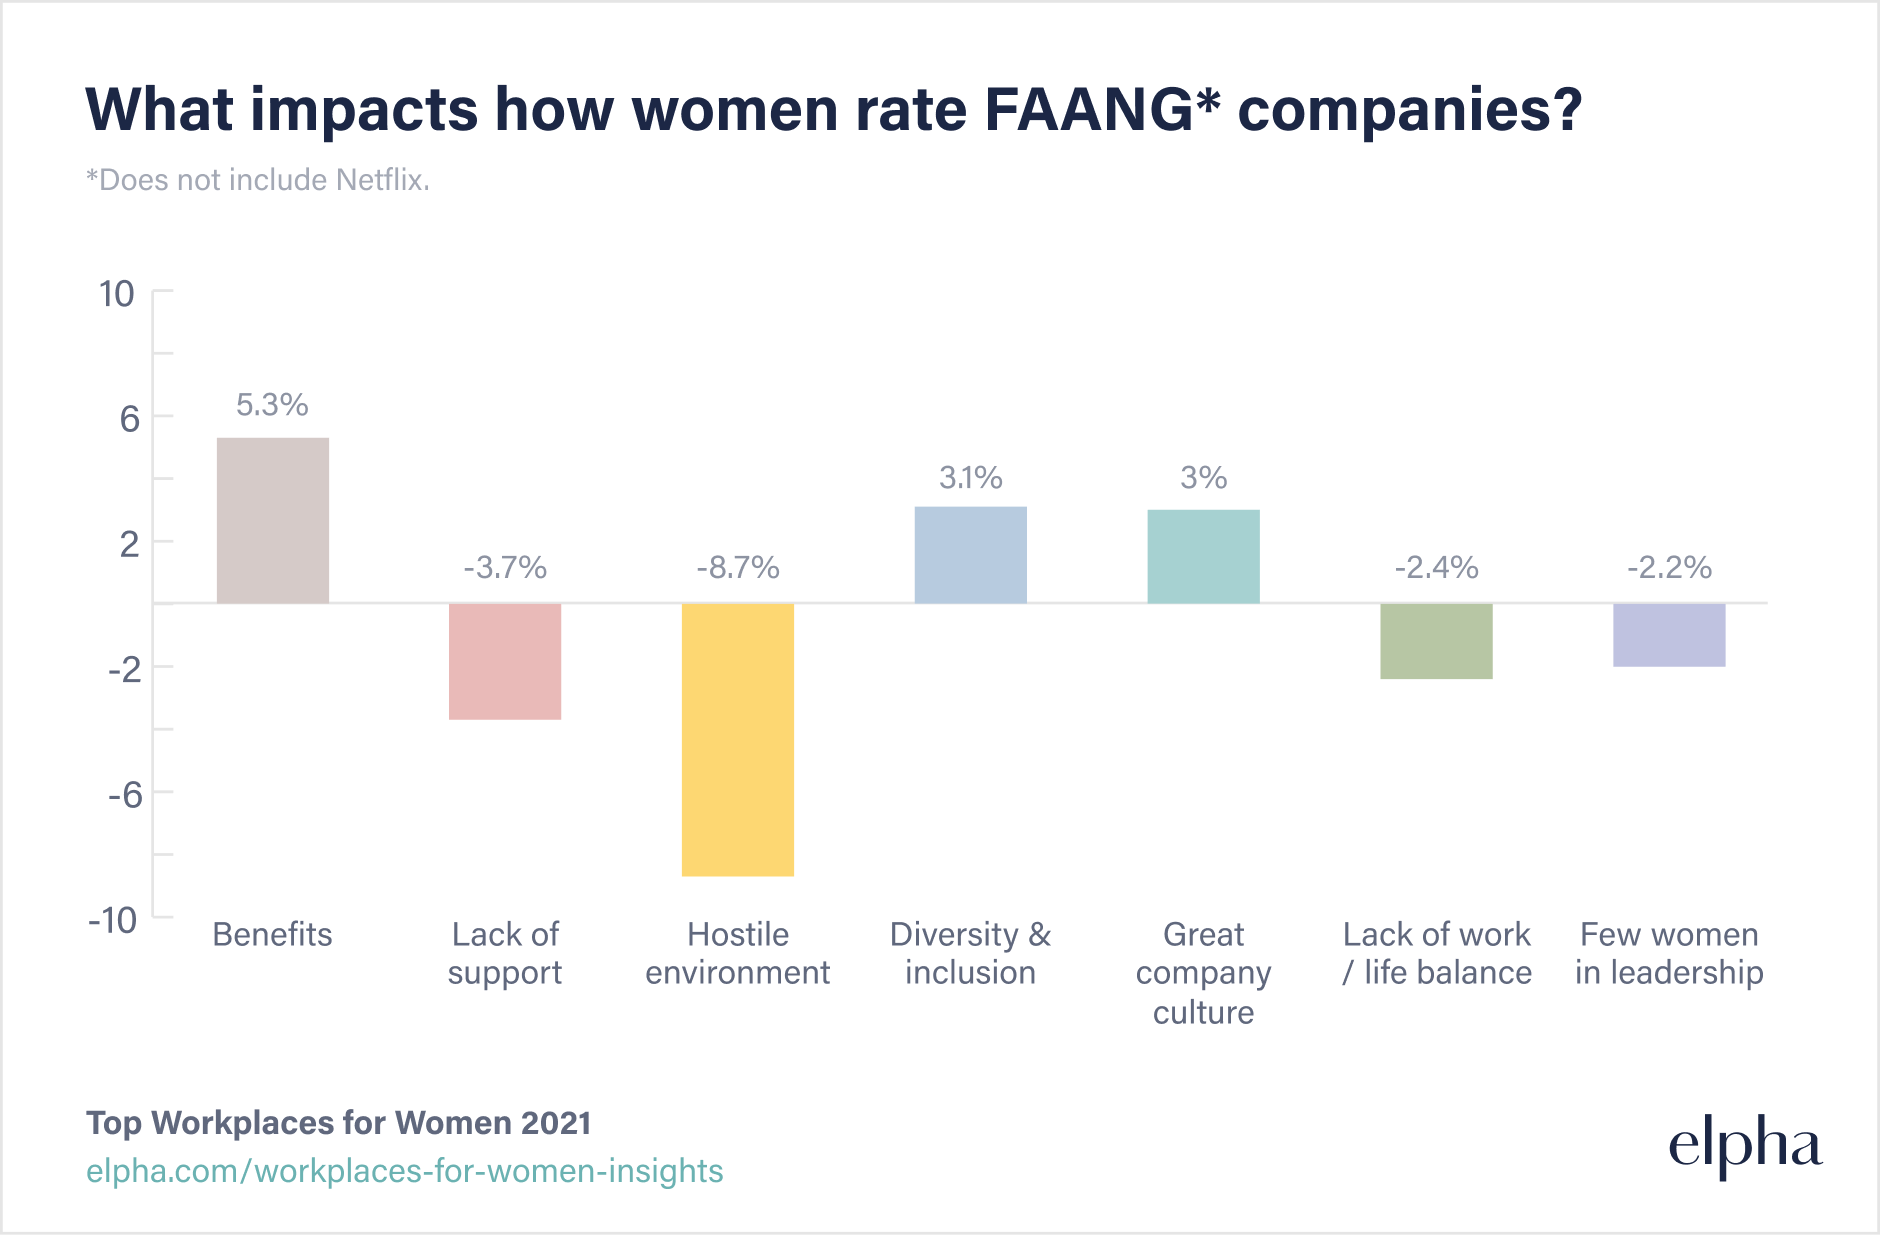 What impacts how women rate FAANG* companies?